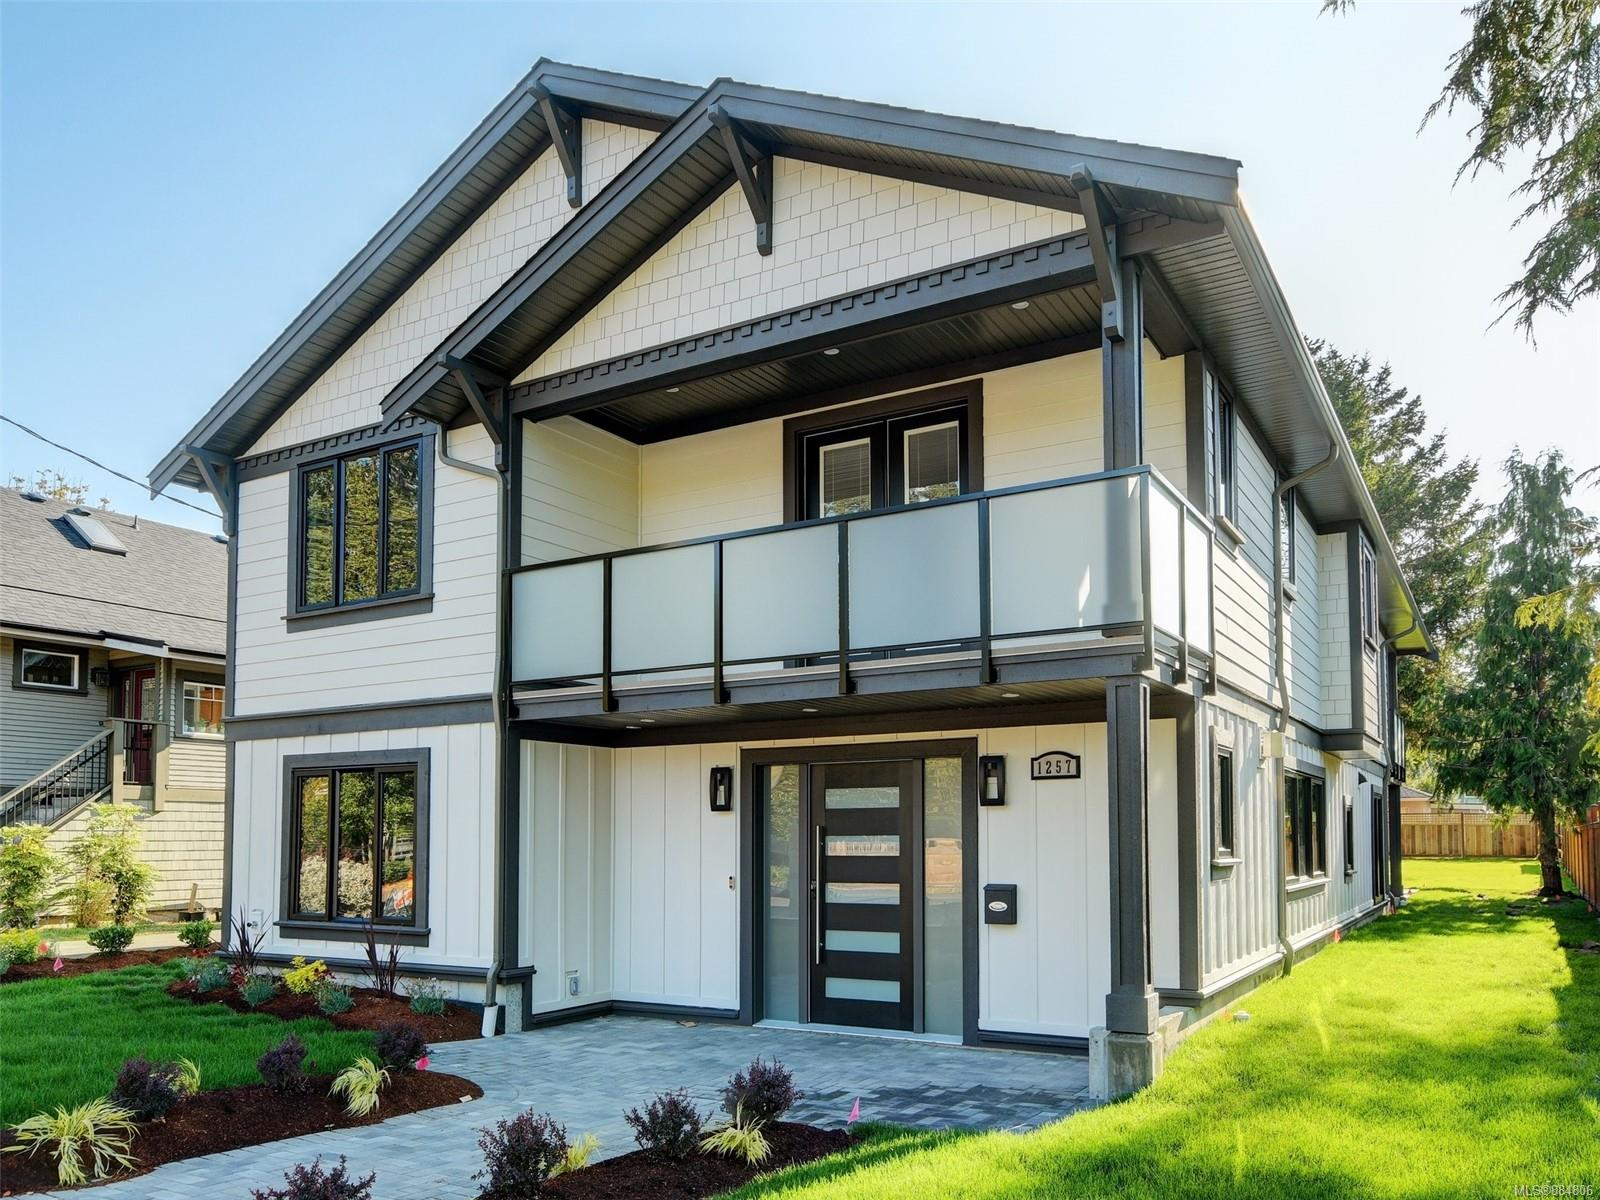 OH Sat 1-3p Fabulous brand new 5 bed, 5 bath 3451 sq ft custom home on a huge 8640 SF lot in South Oak Bay. Rarely do you find builders w/ this level of attention to detail & design! From the moment you step into the open living spaces, you'll appreciate luxurious finishing, wide hallways, glass railings, wide plank Oak floors, radiant in-floor heating & 2 gas fireplaces. You'll love cooking in the chef's kitchen w/ continent-sized island, professional appliances & gas cooktop - all built-in & lots of custom cabinetry & millwork throughout. Upstairs has 4 large bds, rec room, 3 bths & laundry rm. Relax in the huge mstr bdrm w/ private balcony & huge walk-in closet w/ custom organizers. Spa-like ensuite w/ free-standing soaker tub & separate large glass shower. The versatile Nanny suite or office w/ bath on main floor has its own entrance. Fantastic curb appeal, landscaped & off street lane access. Huge fenced backyard w/mature trees. Smart home w/video security system & Google Home.